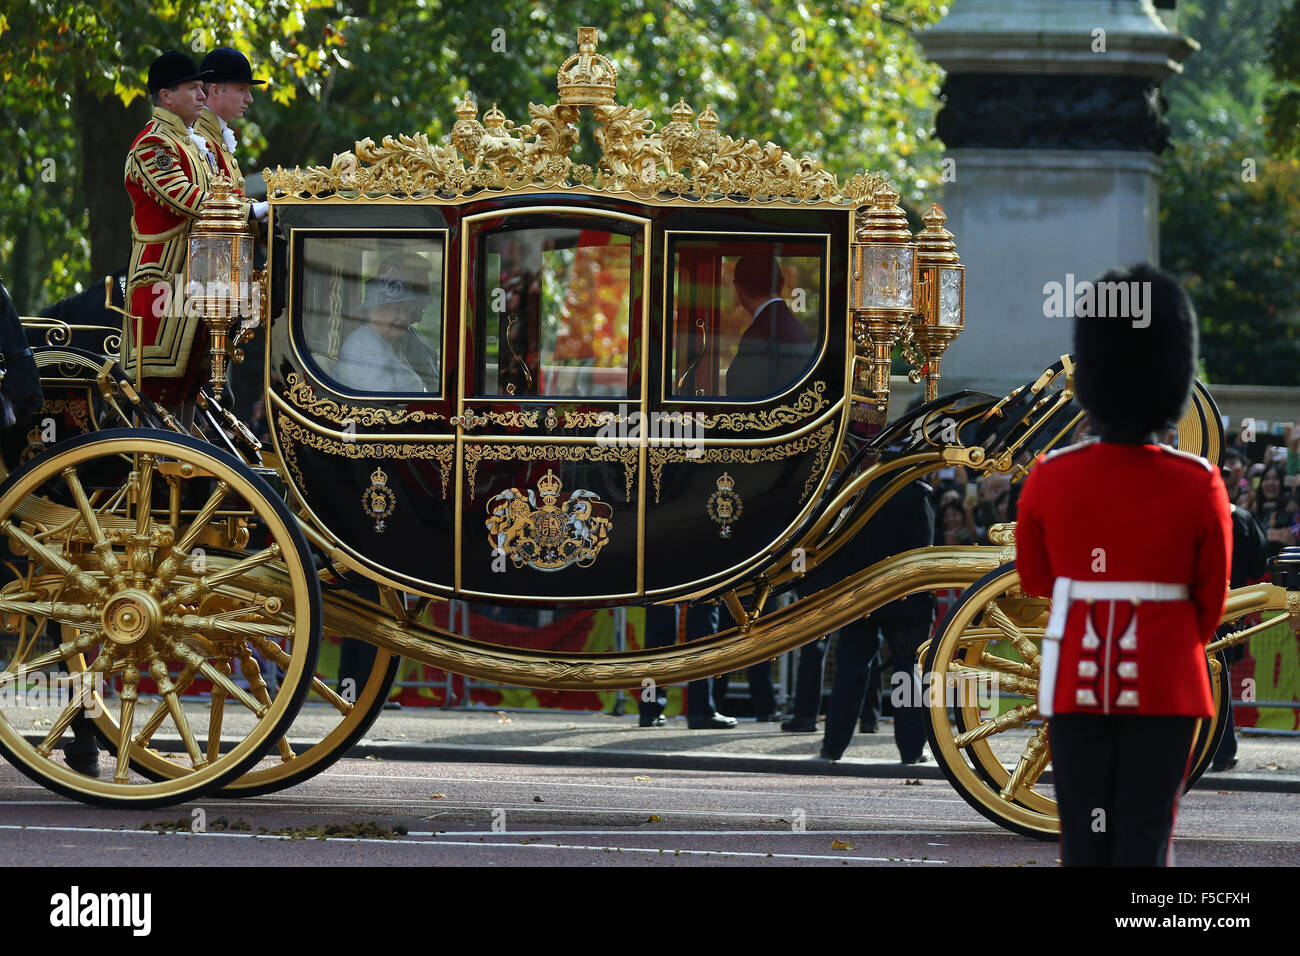 London, UK, 20th Oct 2015: Queen Elizabeth and Xi Jinping in the Royal carriage on The Mall for the Chinese President - Stock Image